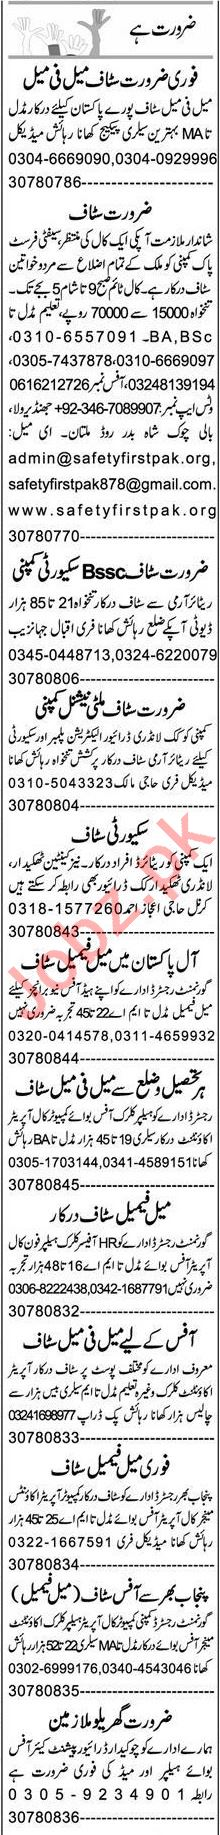 Promotion Officer & Accountant Jobs 2021 in Multan